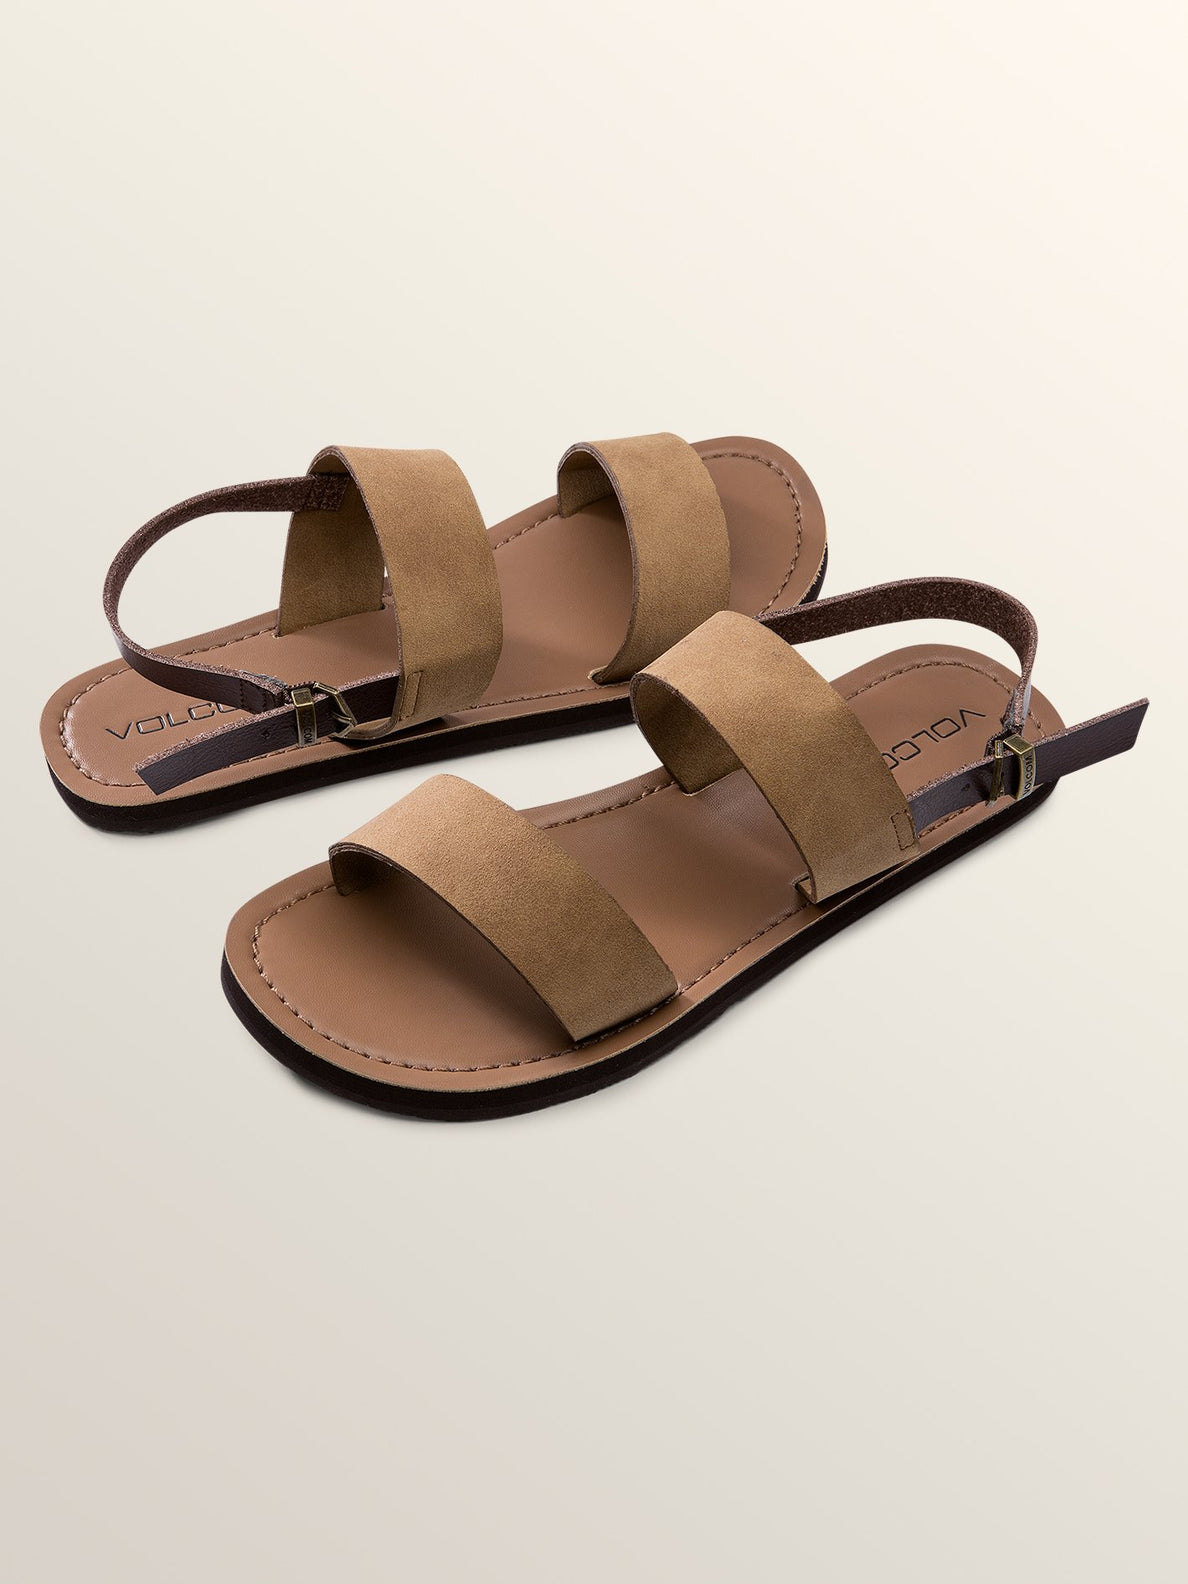 Stone Slide Sandals In Caramel, Front View